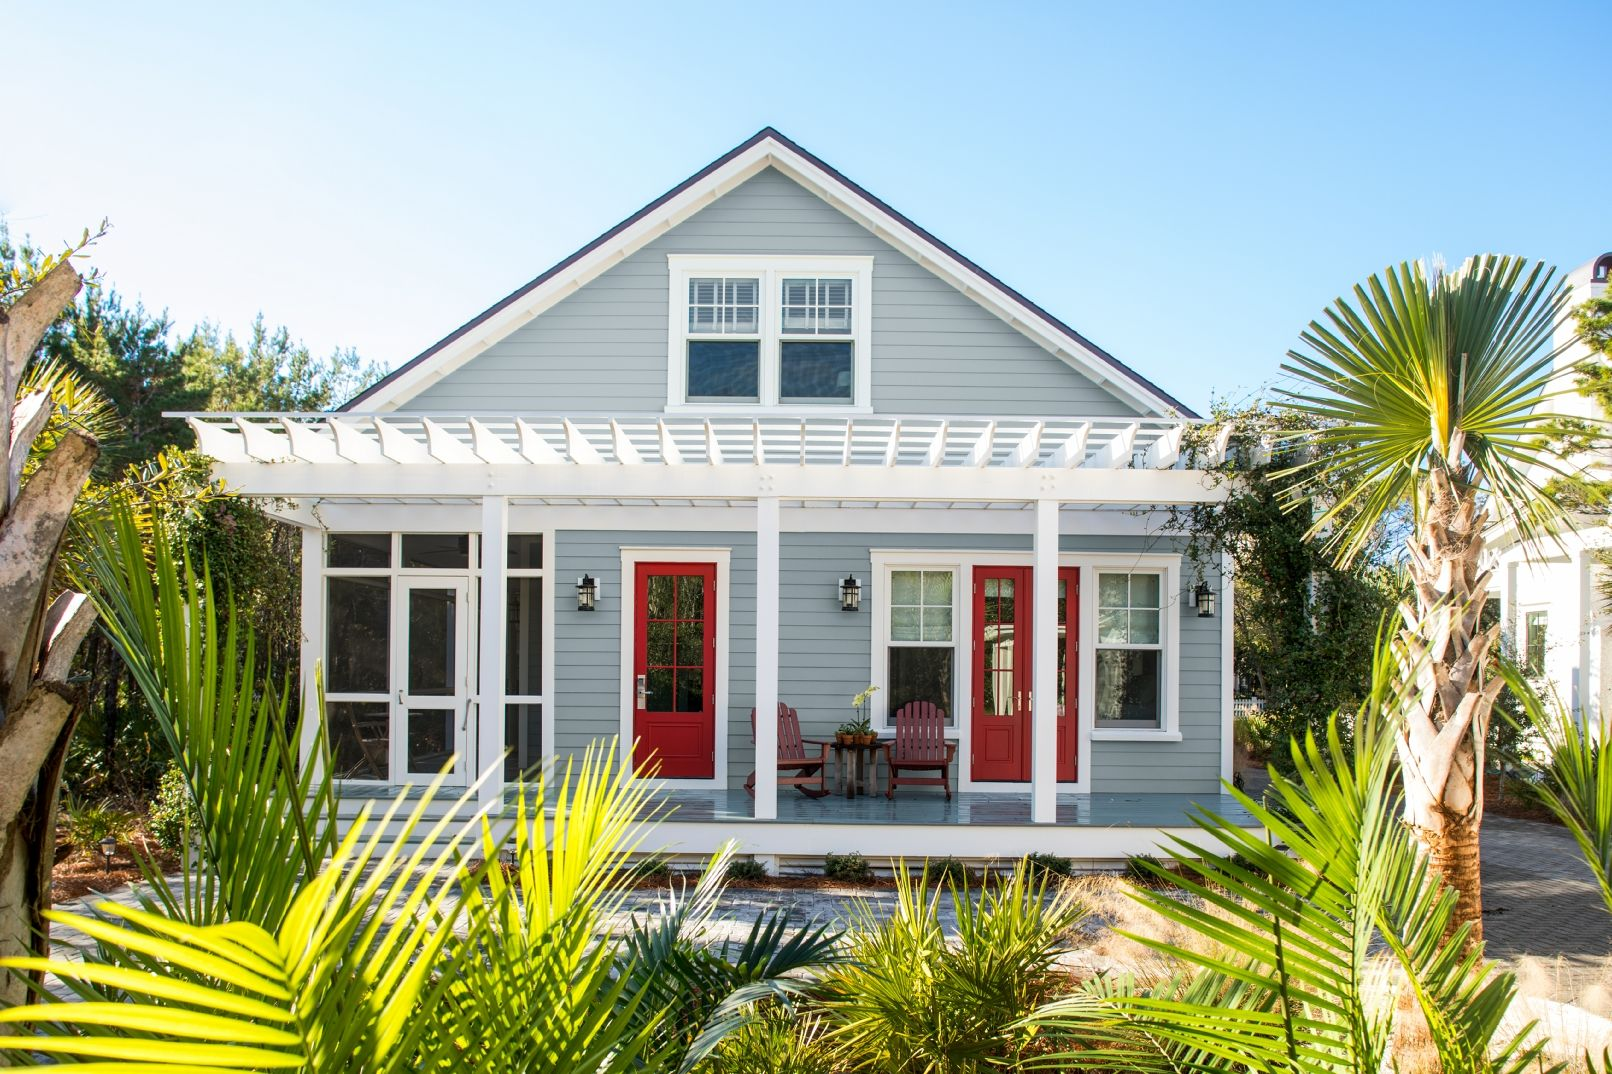 home exterior color ideas inspiration benjamin moore on exterior home paint ideas pictures id=15574